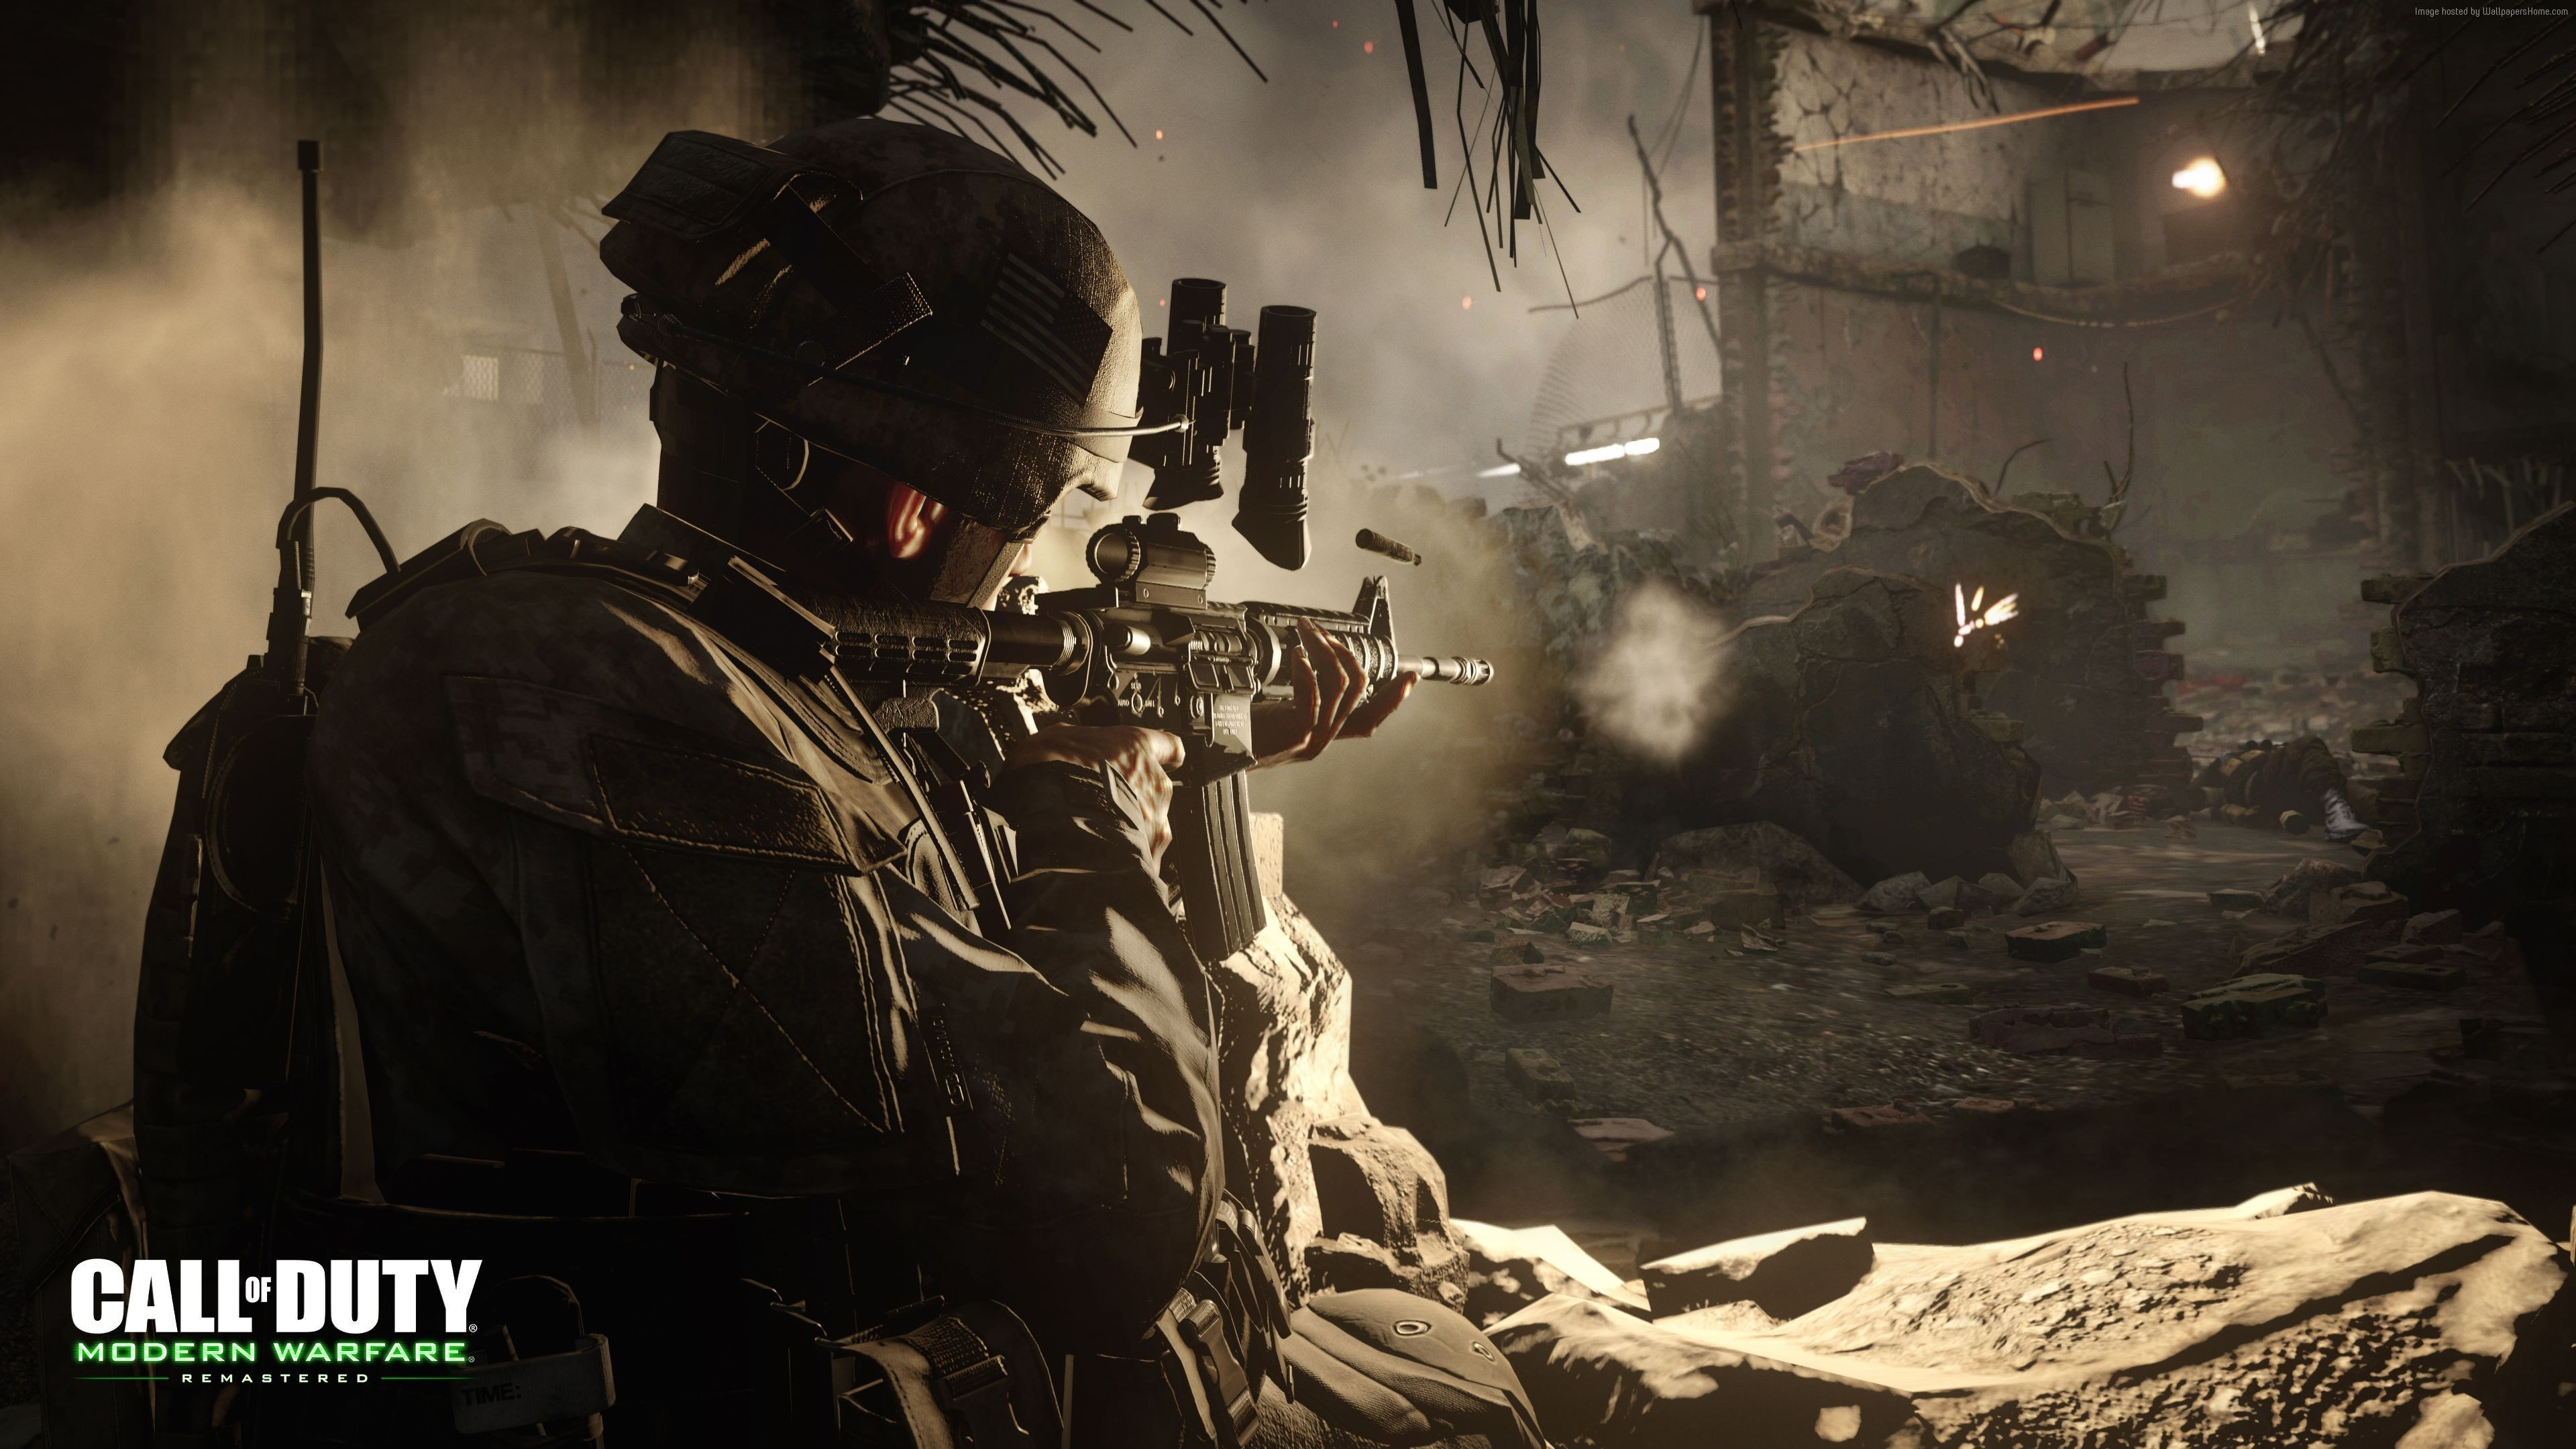 Free Download Call Of Duty 4 Wallpaper 72 Images 3840x2160 For